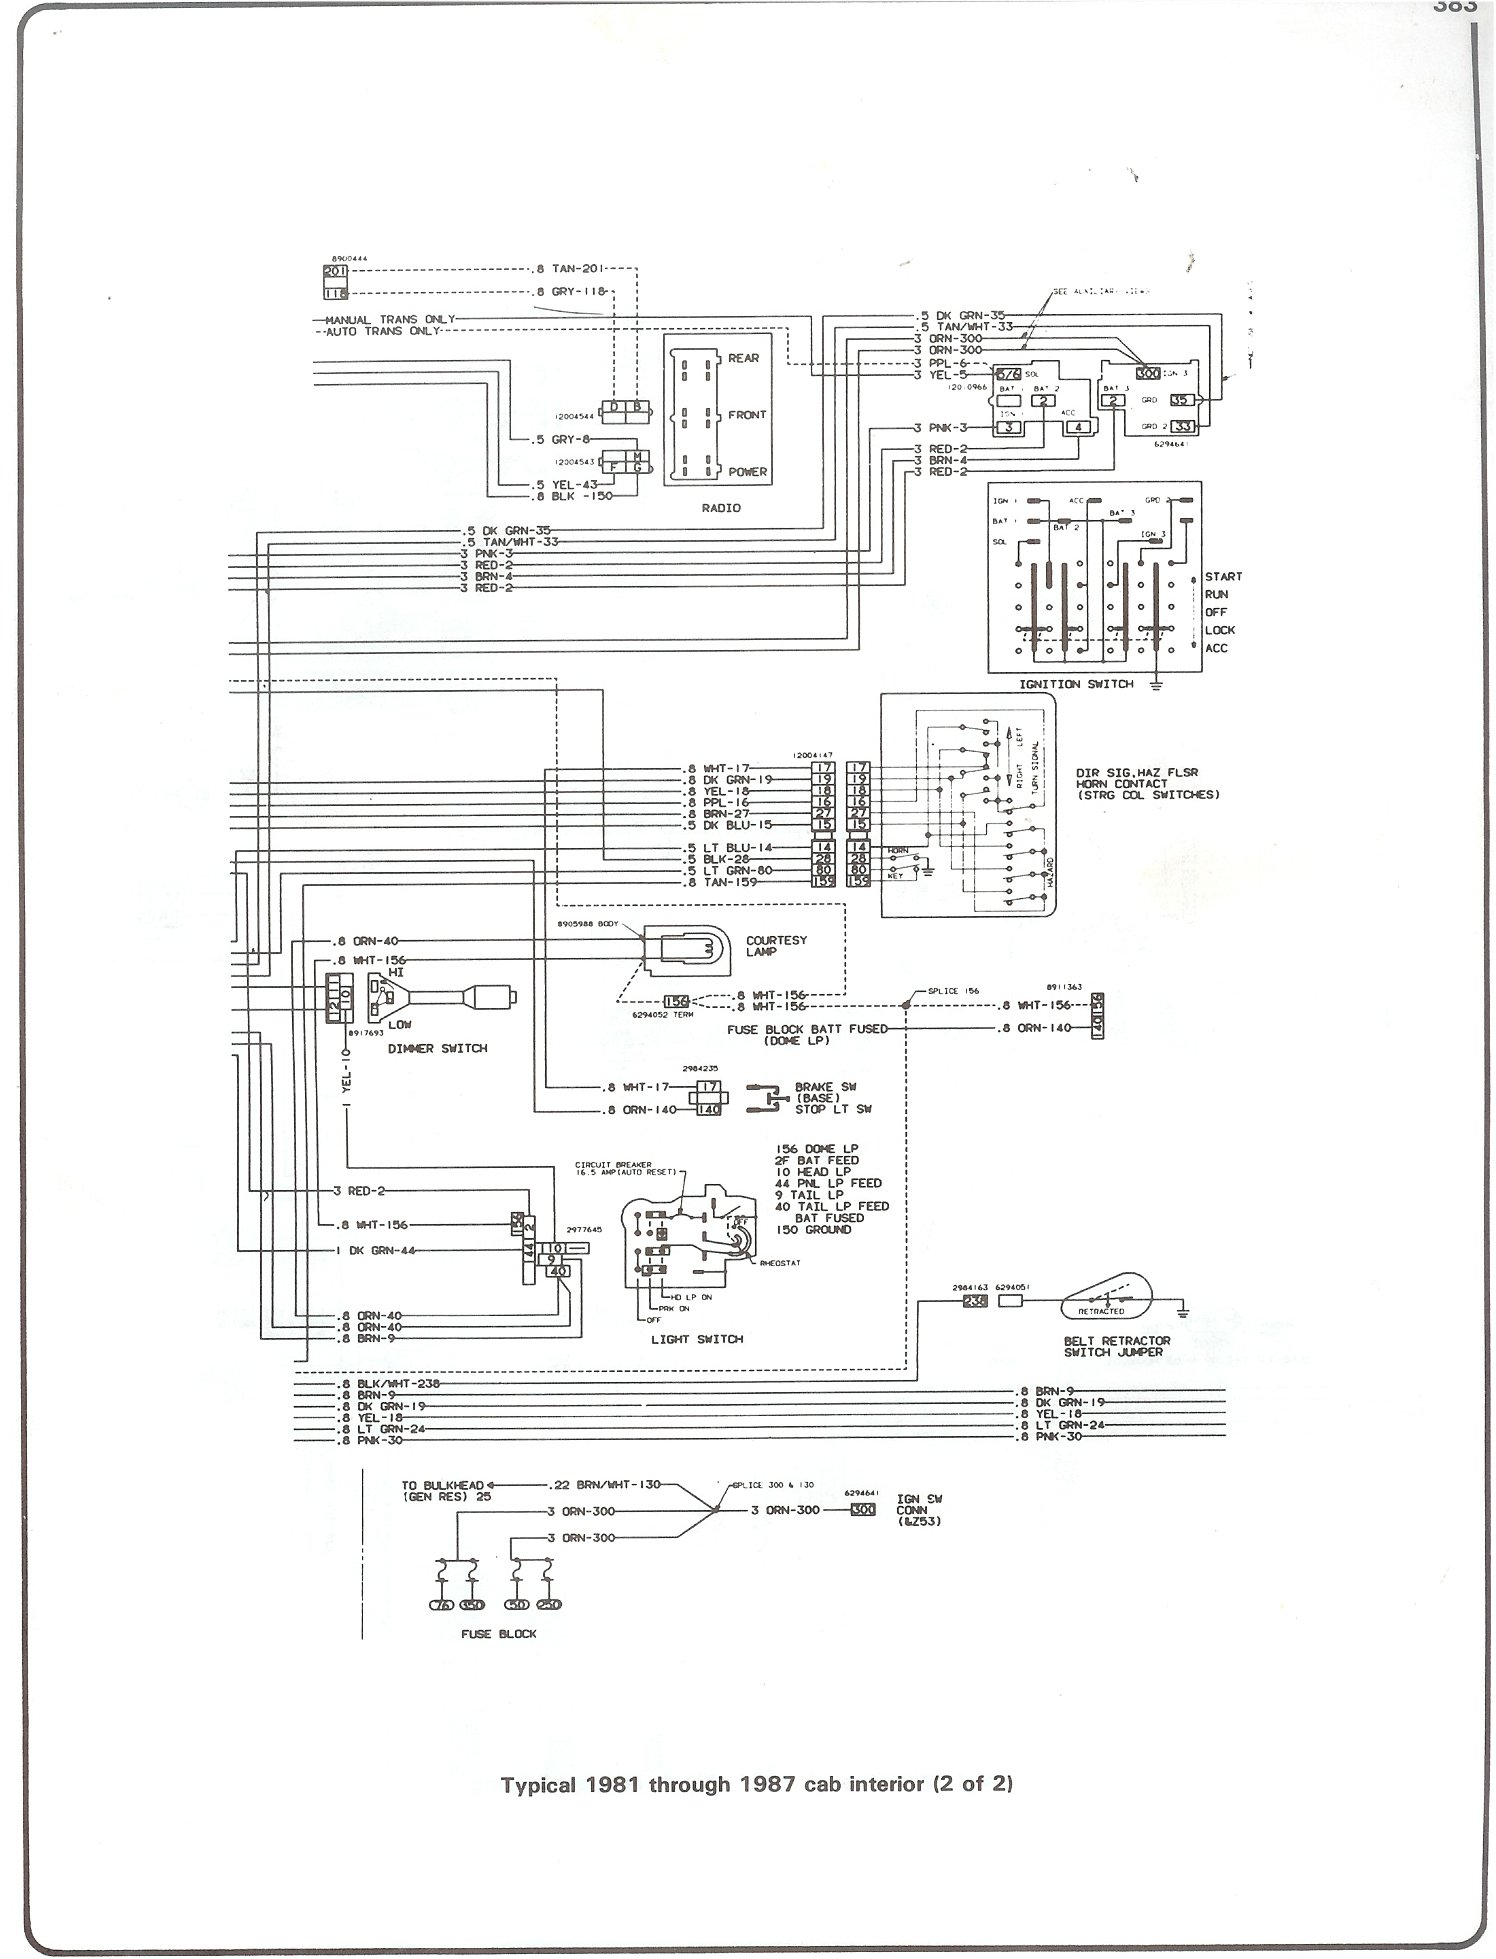 Complete 73 87 Wiring Diagrams 1964 Chevy Truck Diagram Pdf 81 Cab Interior Page 2